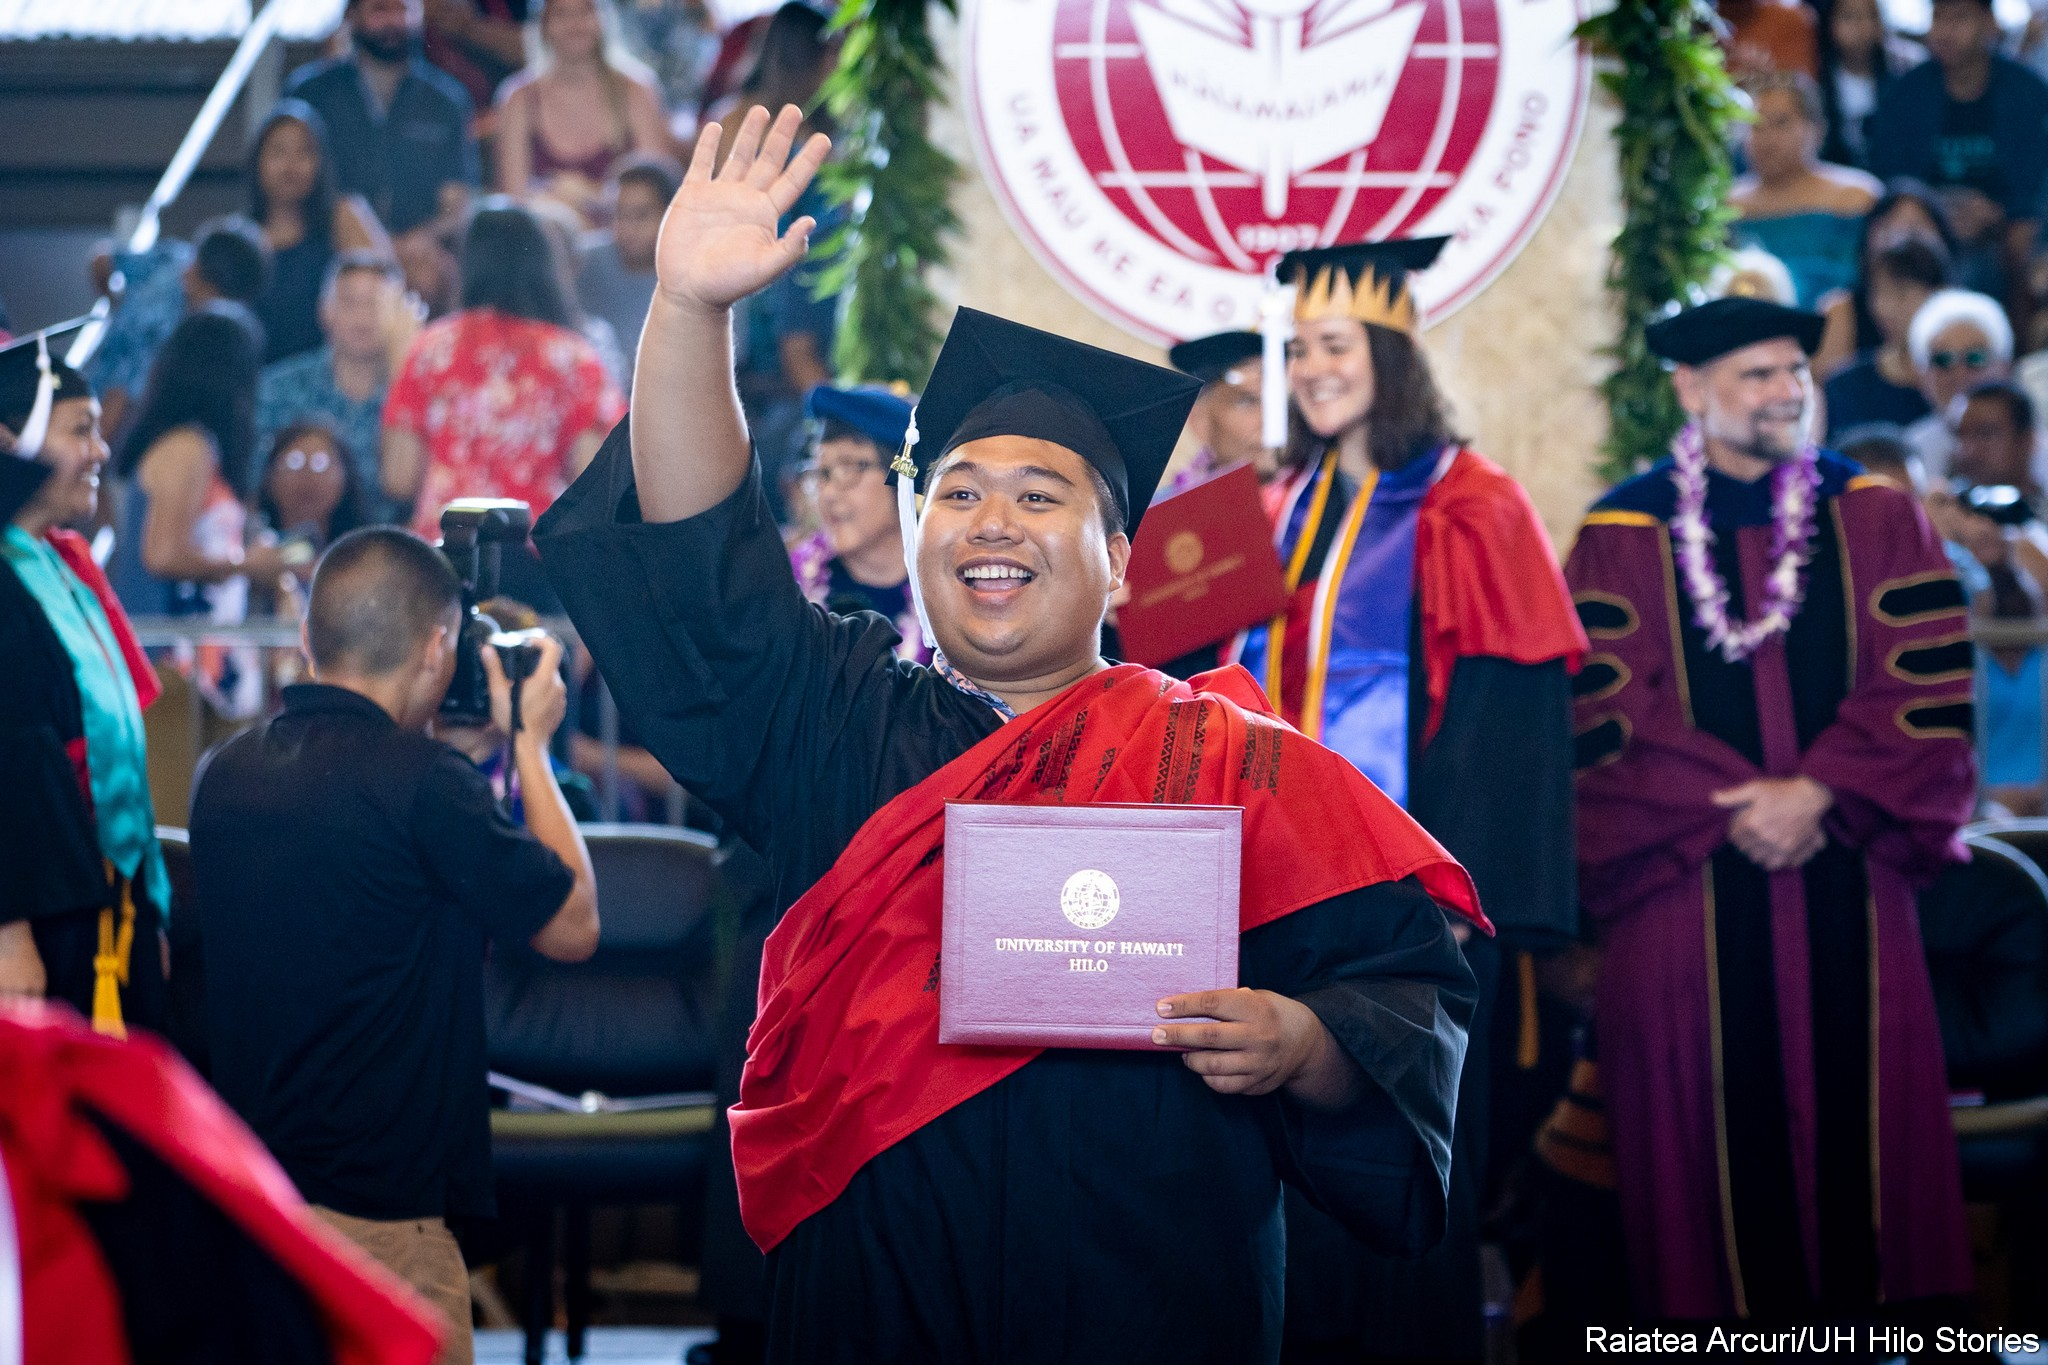 Graduate waves to audience while leaving dais with diploma.